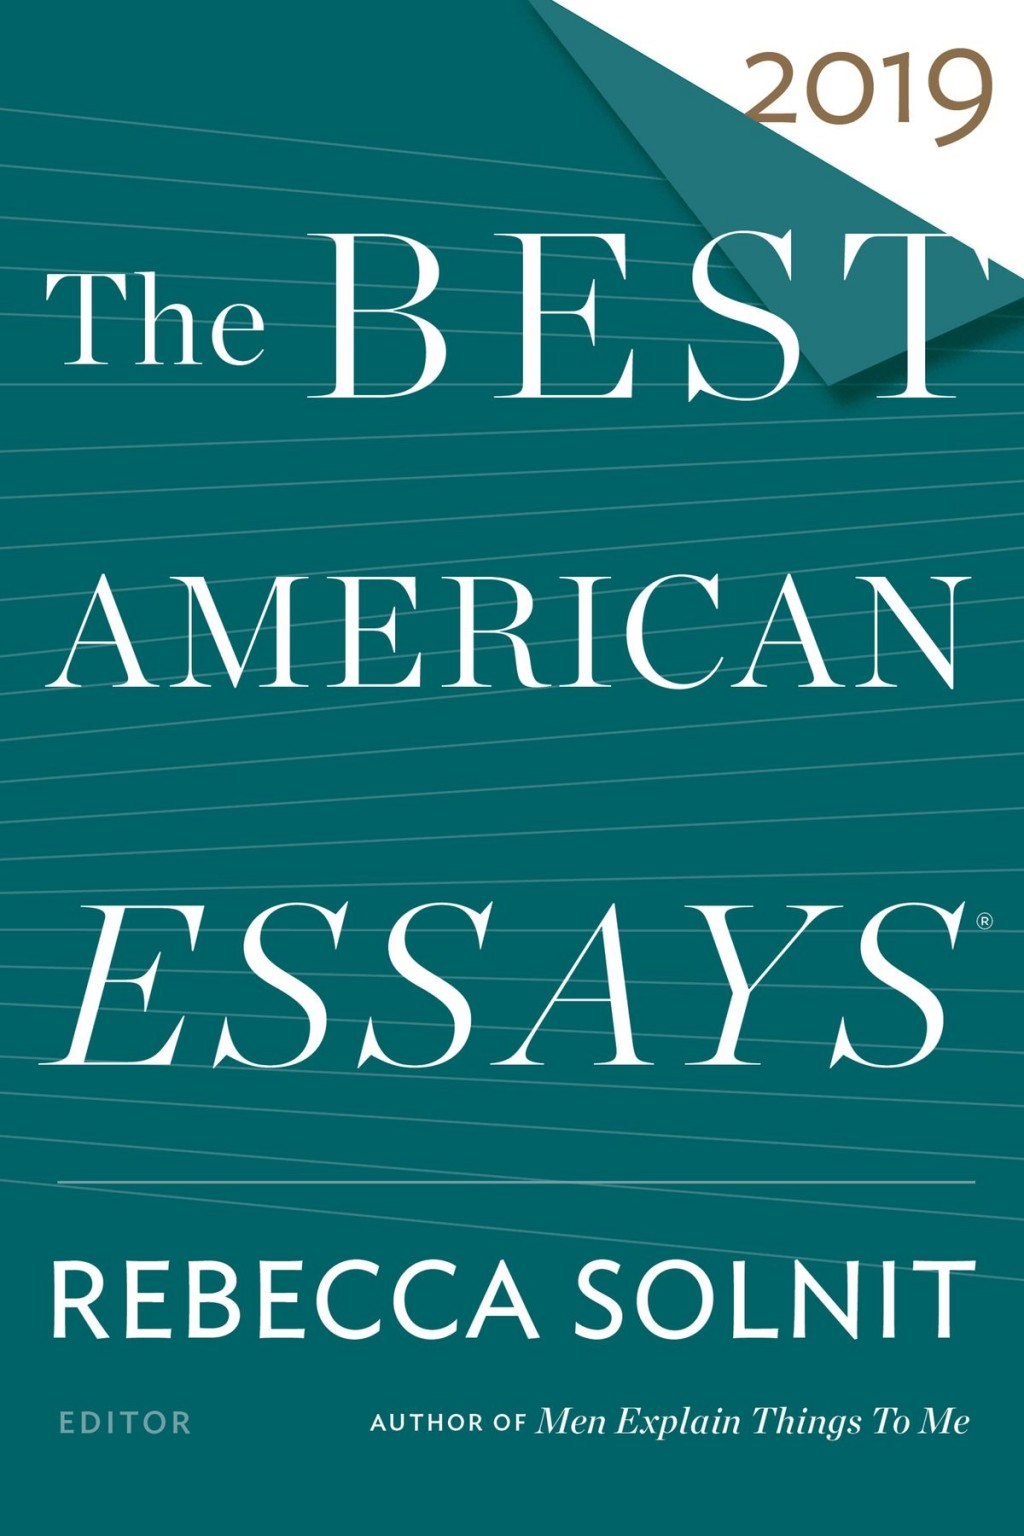 007 The Best American Essays Essay Wonderful 2013 Pdf Download Of Century Sparknotes 2017 Large